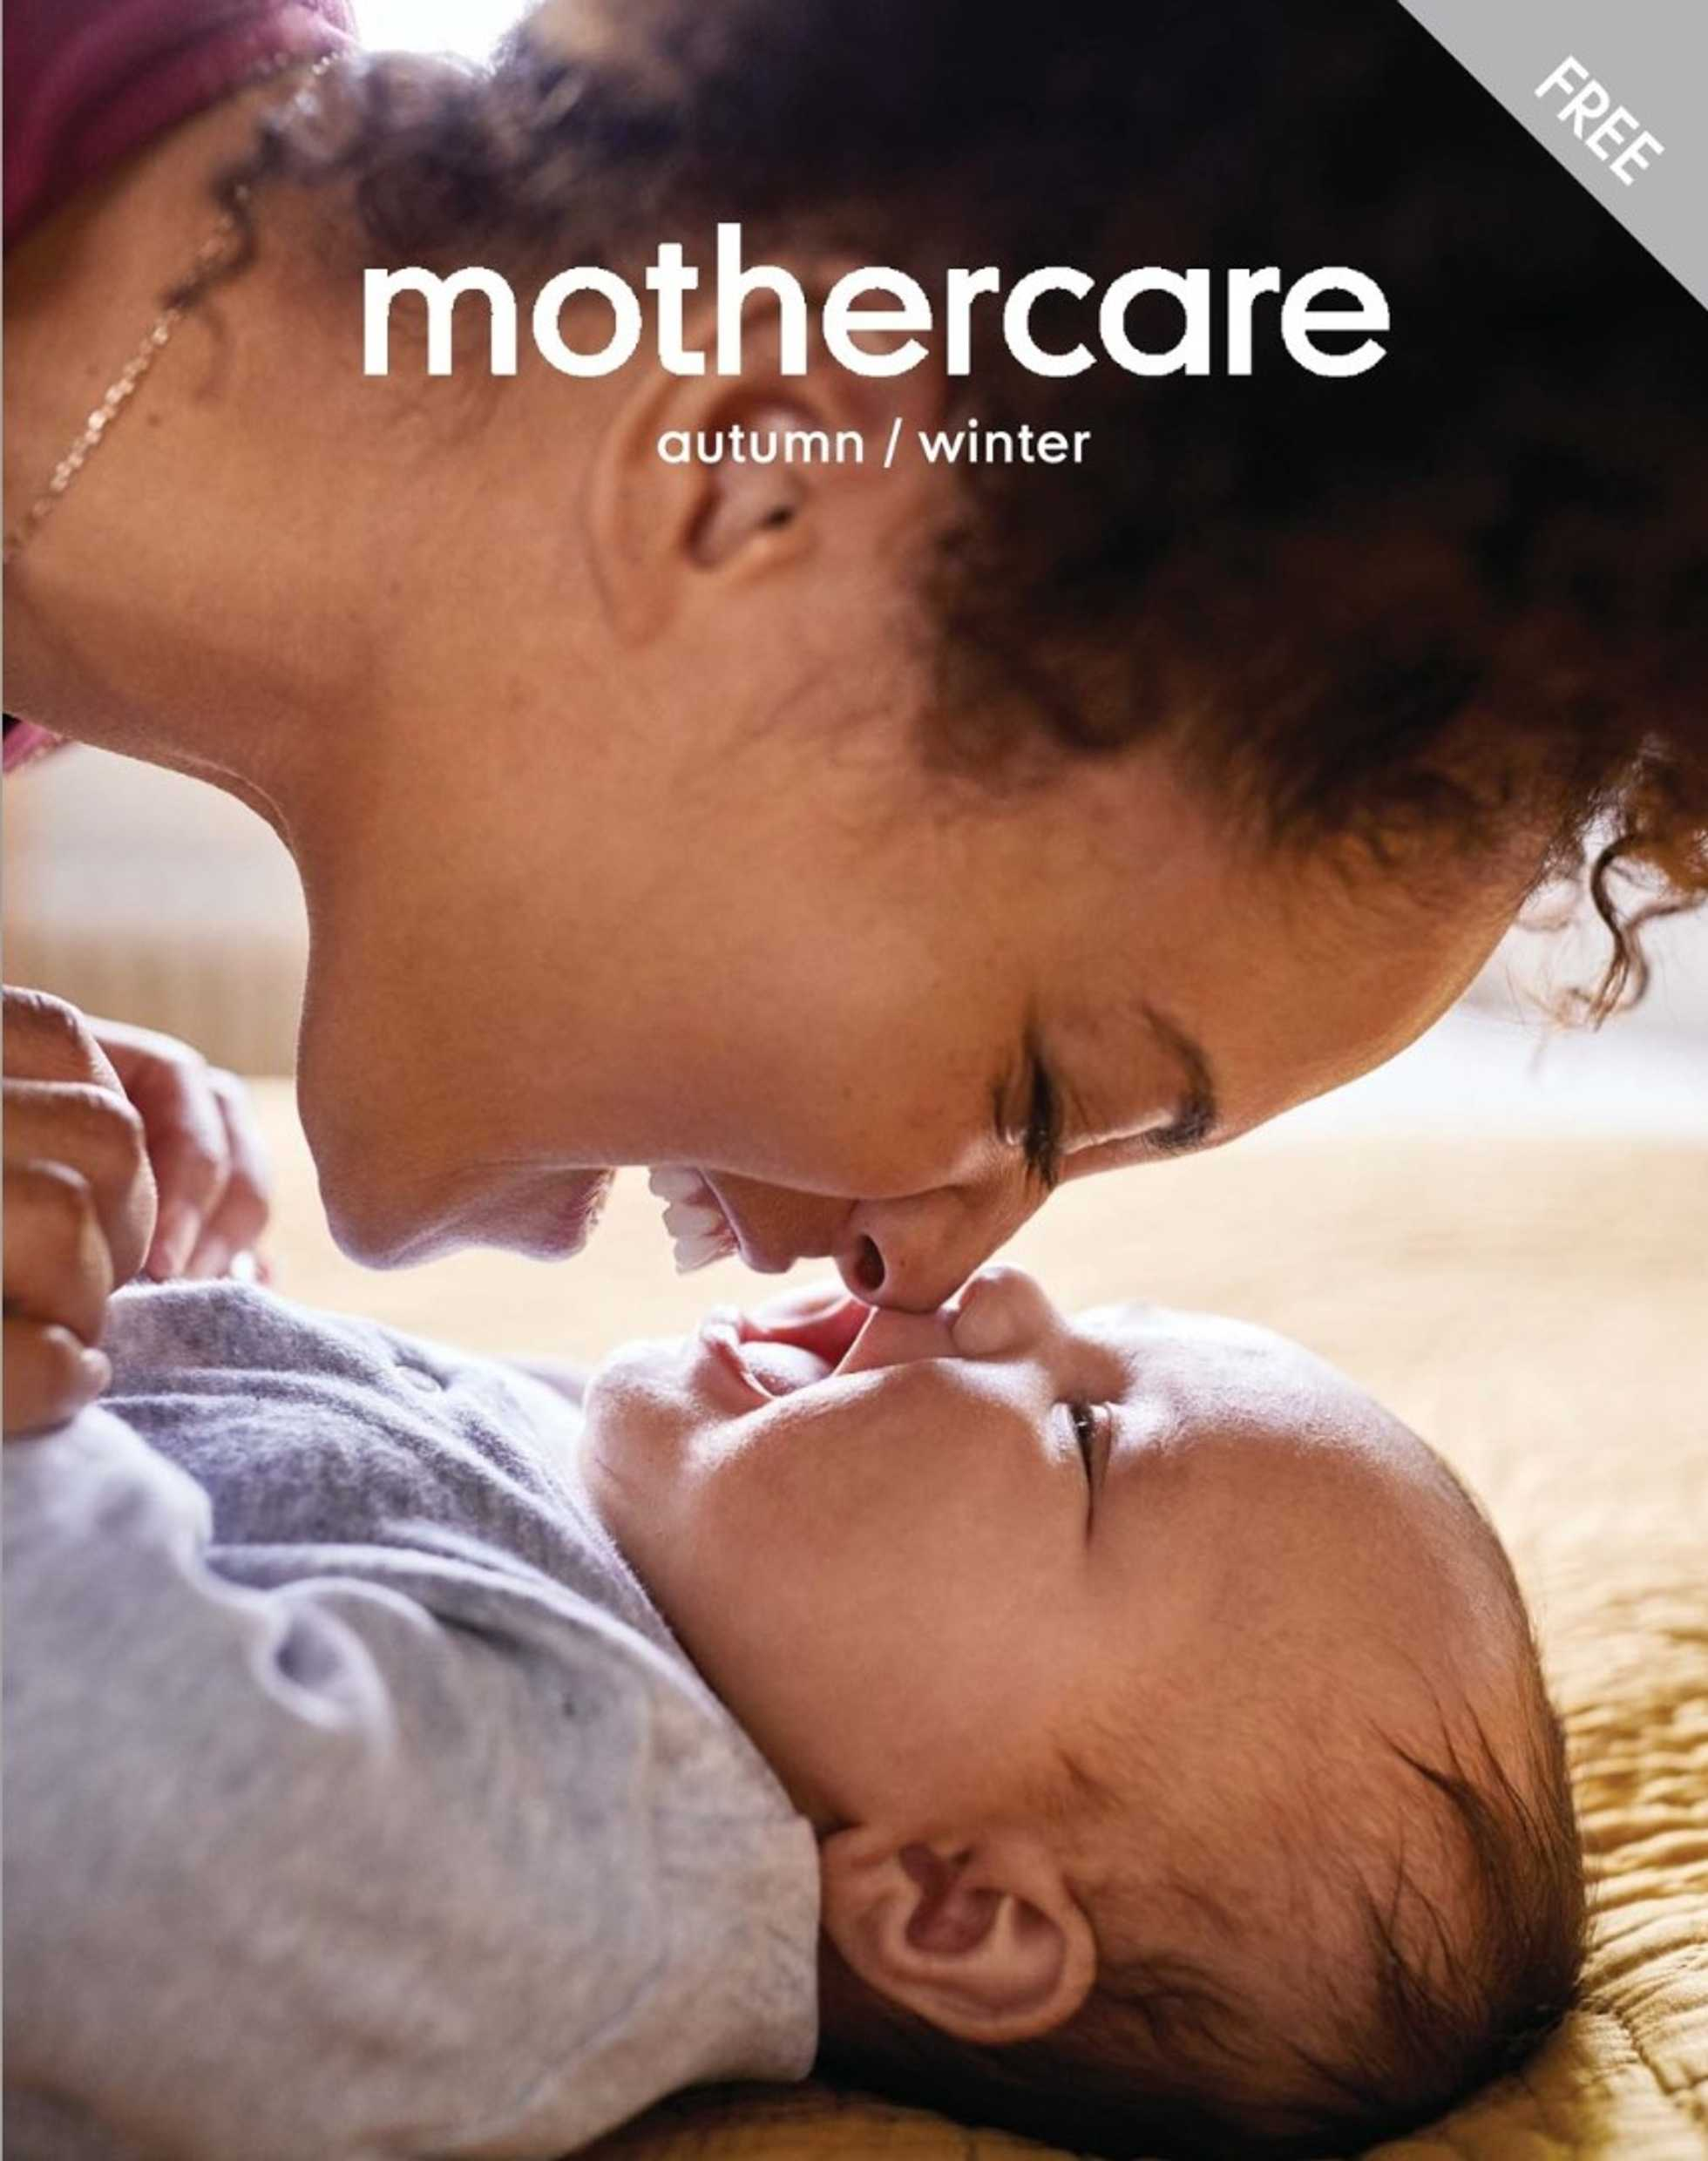 Mothercare - promo starting from 05.11.2019 to 29.02.2020 - page 1. The promotion includes mothercare